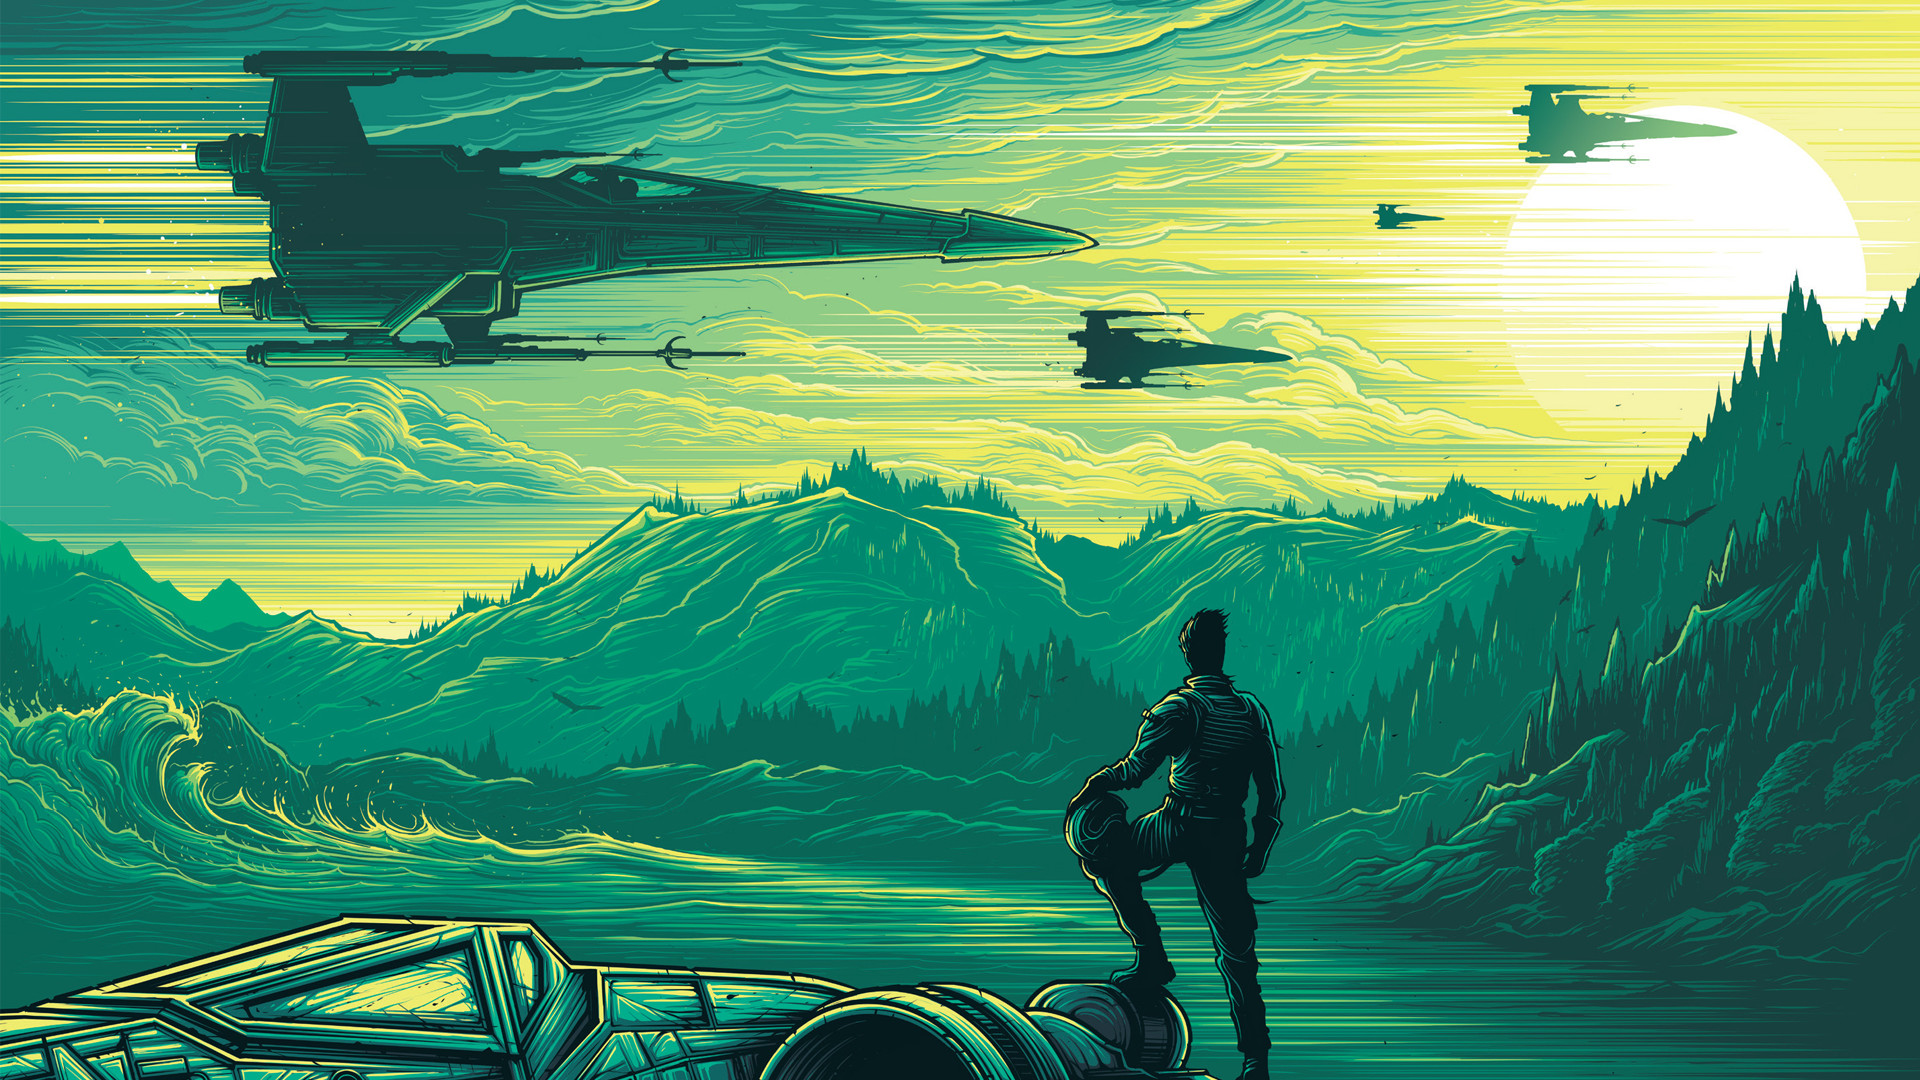 1920x1080 General  Star Wars Star Wars: The Force Awakens Dan Mumford